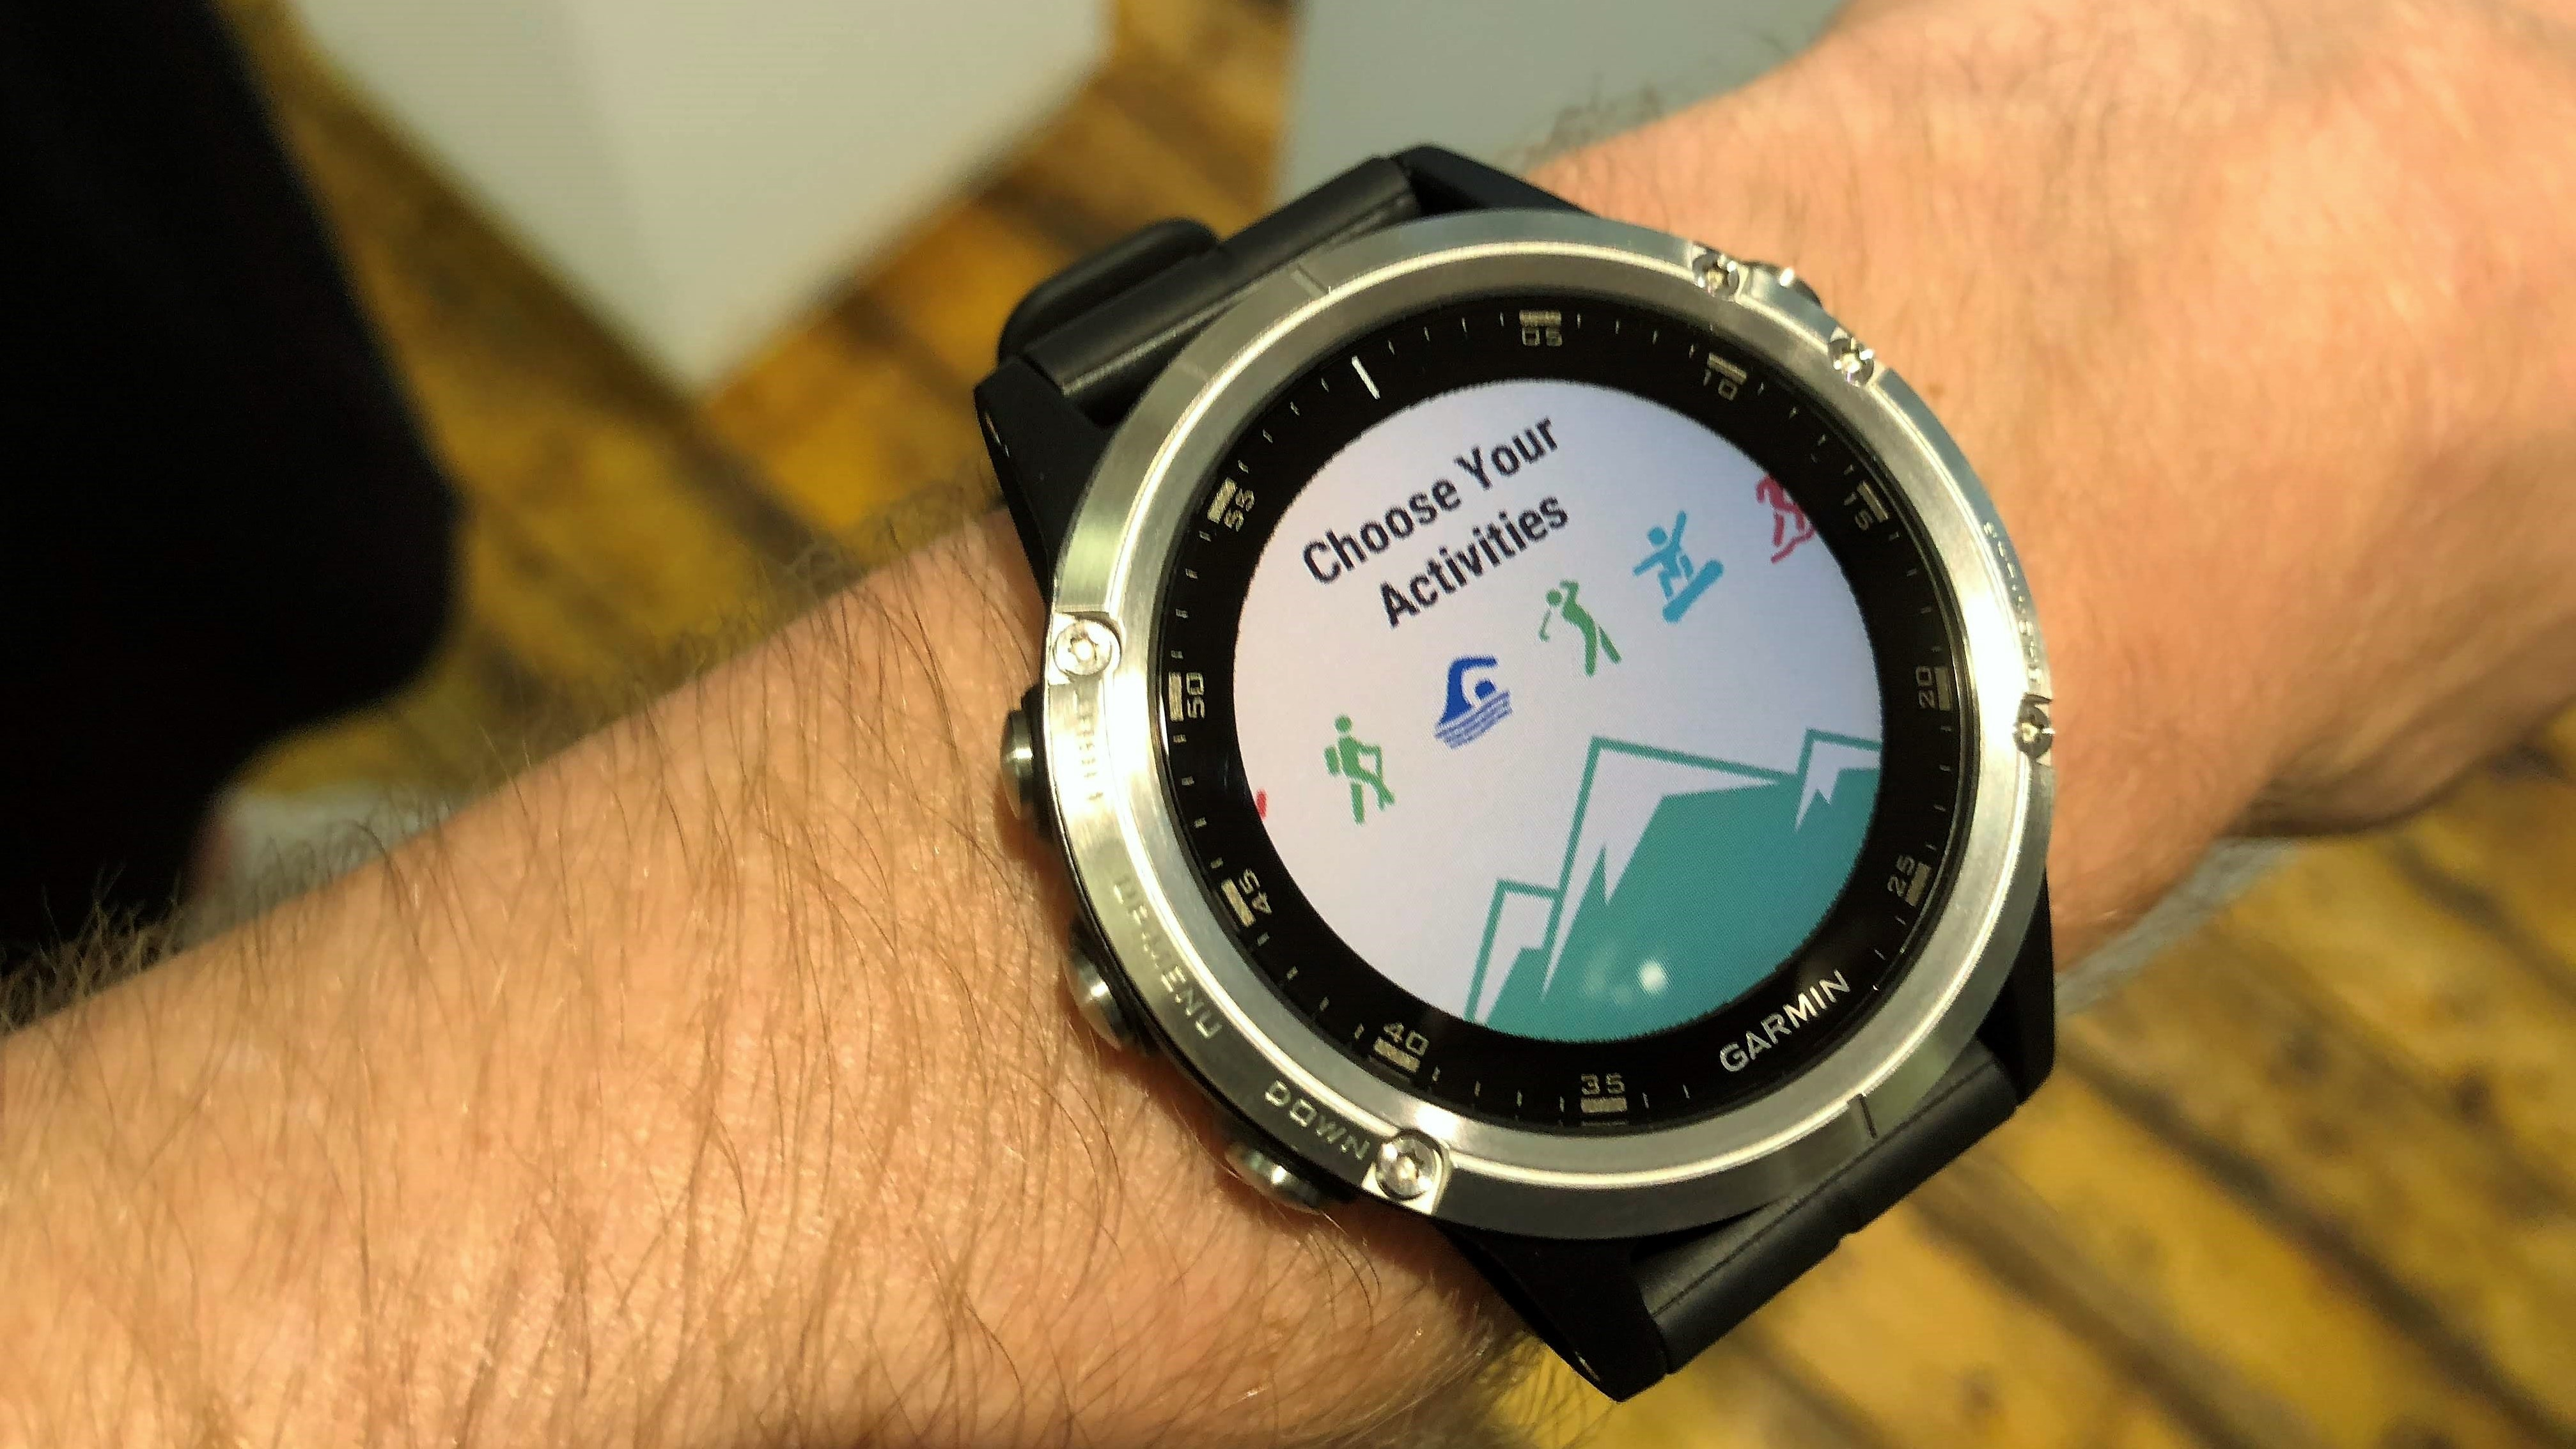 Why Using The Garmin Fenix 5 Plus Makes Me Feel So Incredibly Guilty